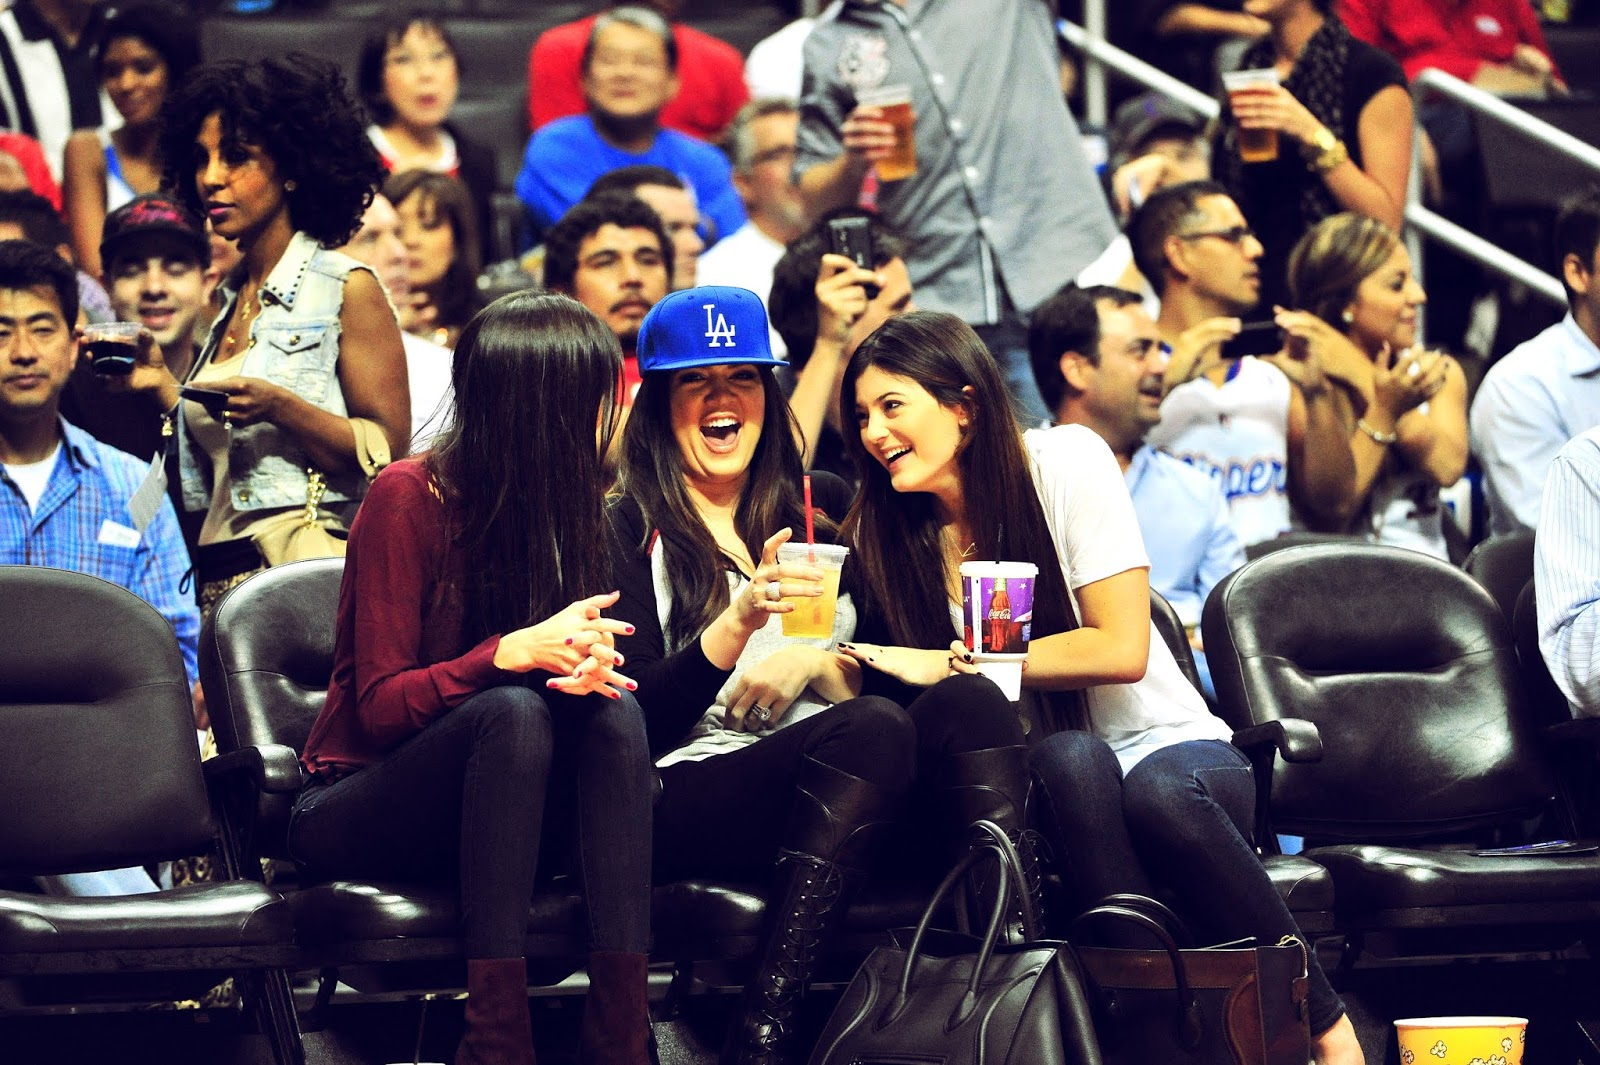 04 - Watching The Los Angeles Clippers Game on October 17, 2012